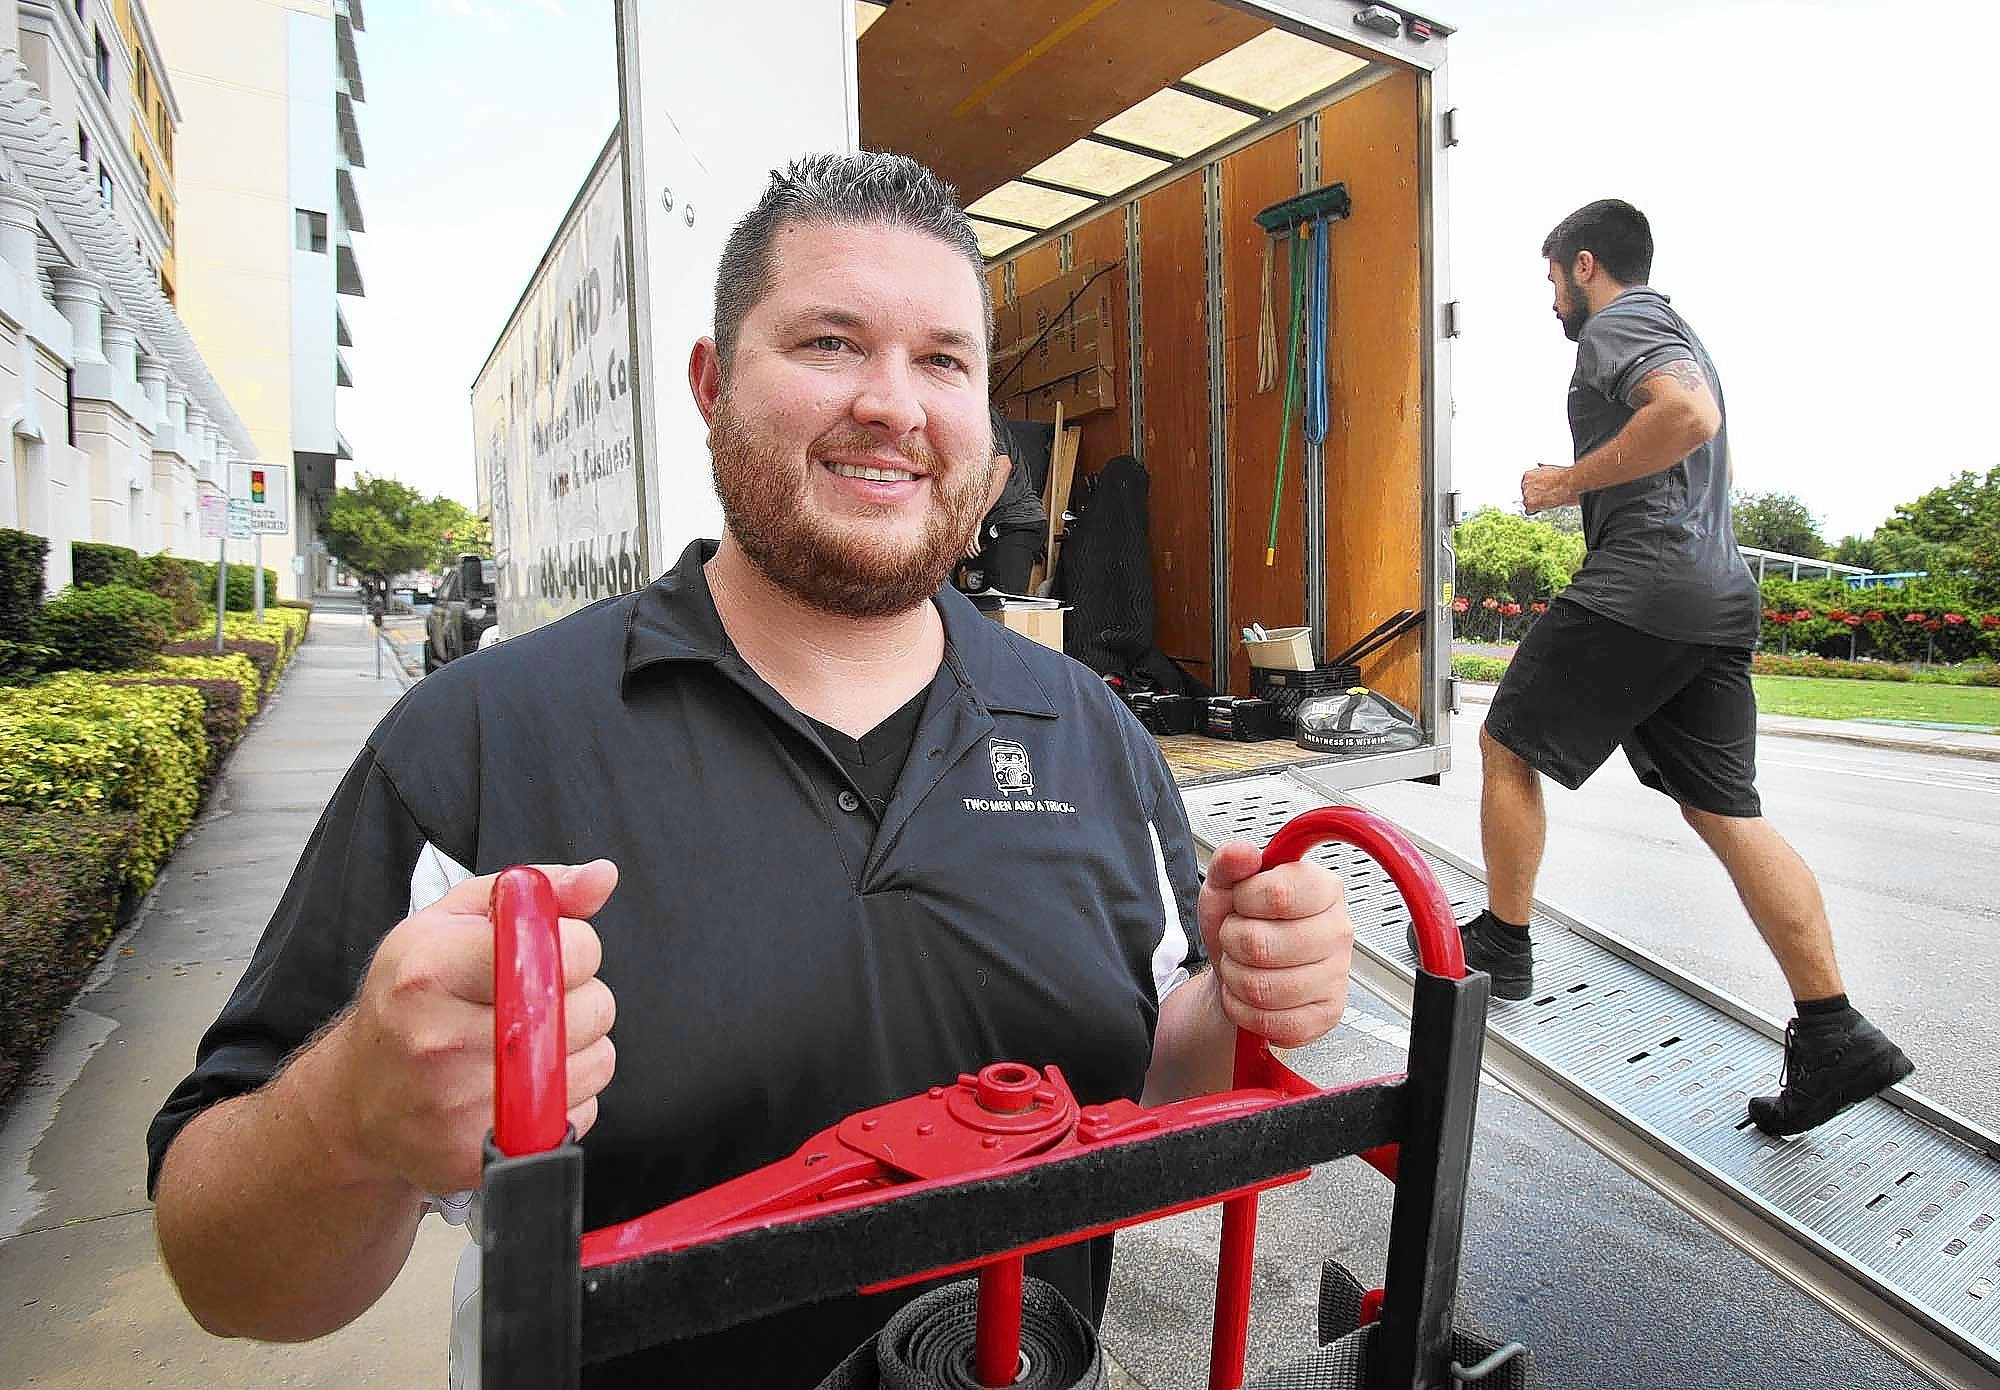 Jonathan Crain, owner of a Two Men and a Truck franchise, is pictured at one of his trucks as his 2-man crew moves items into an apartment building in downtown Orlando on Thursday, August 7, 2014.